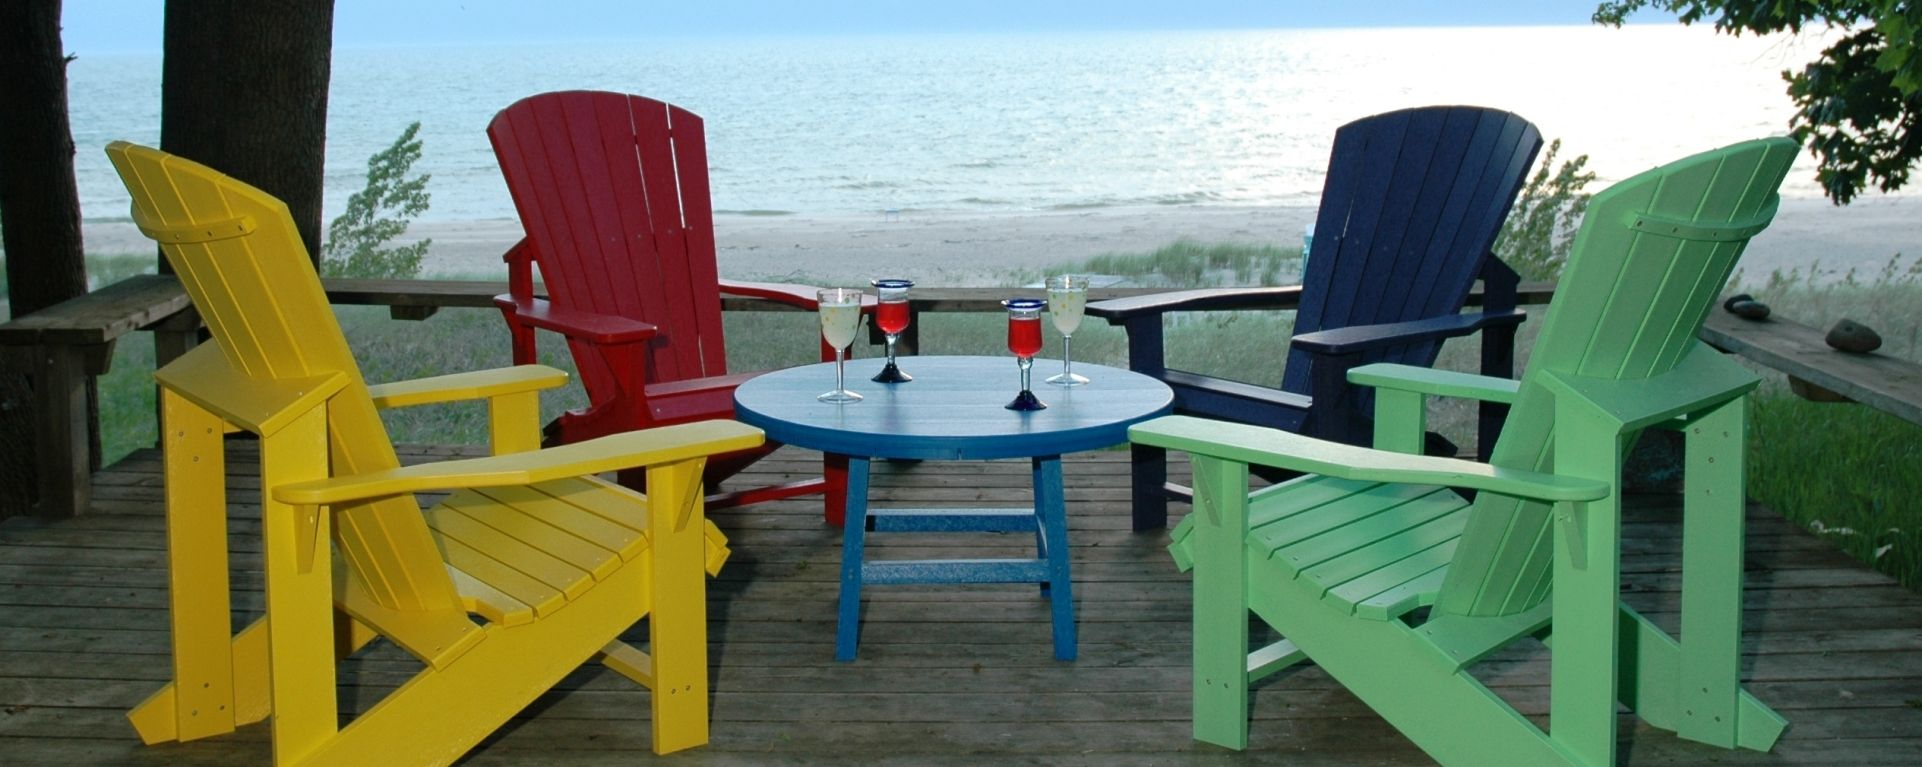 Outdoor Patio Furniture Outdoor Furniture Outlet Showroom Stores Nassau County Suffolk Recycled Plastic Outdoor Furniture Outdoor Furniture Muskoka Chair